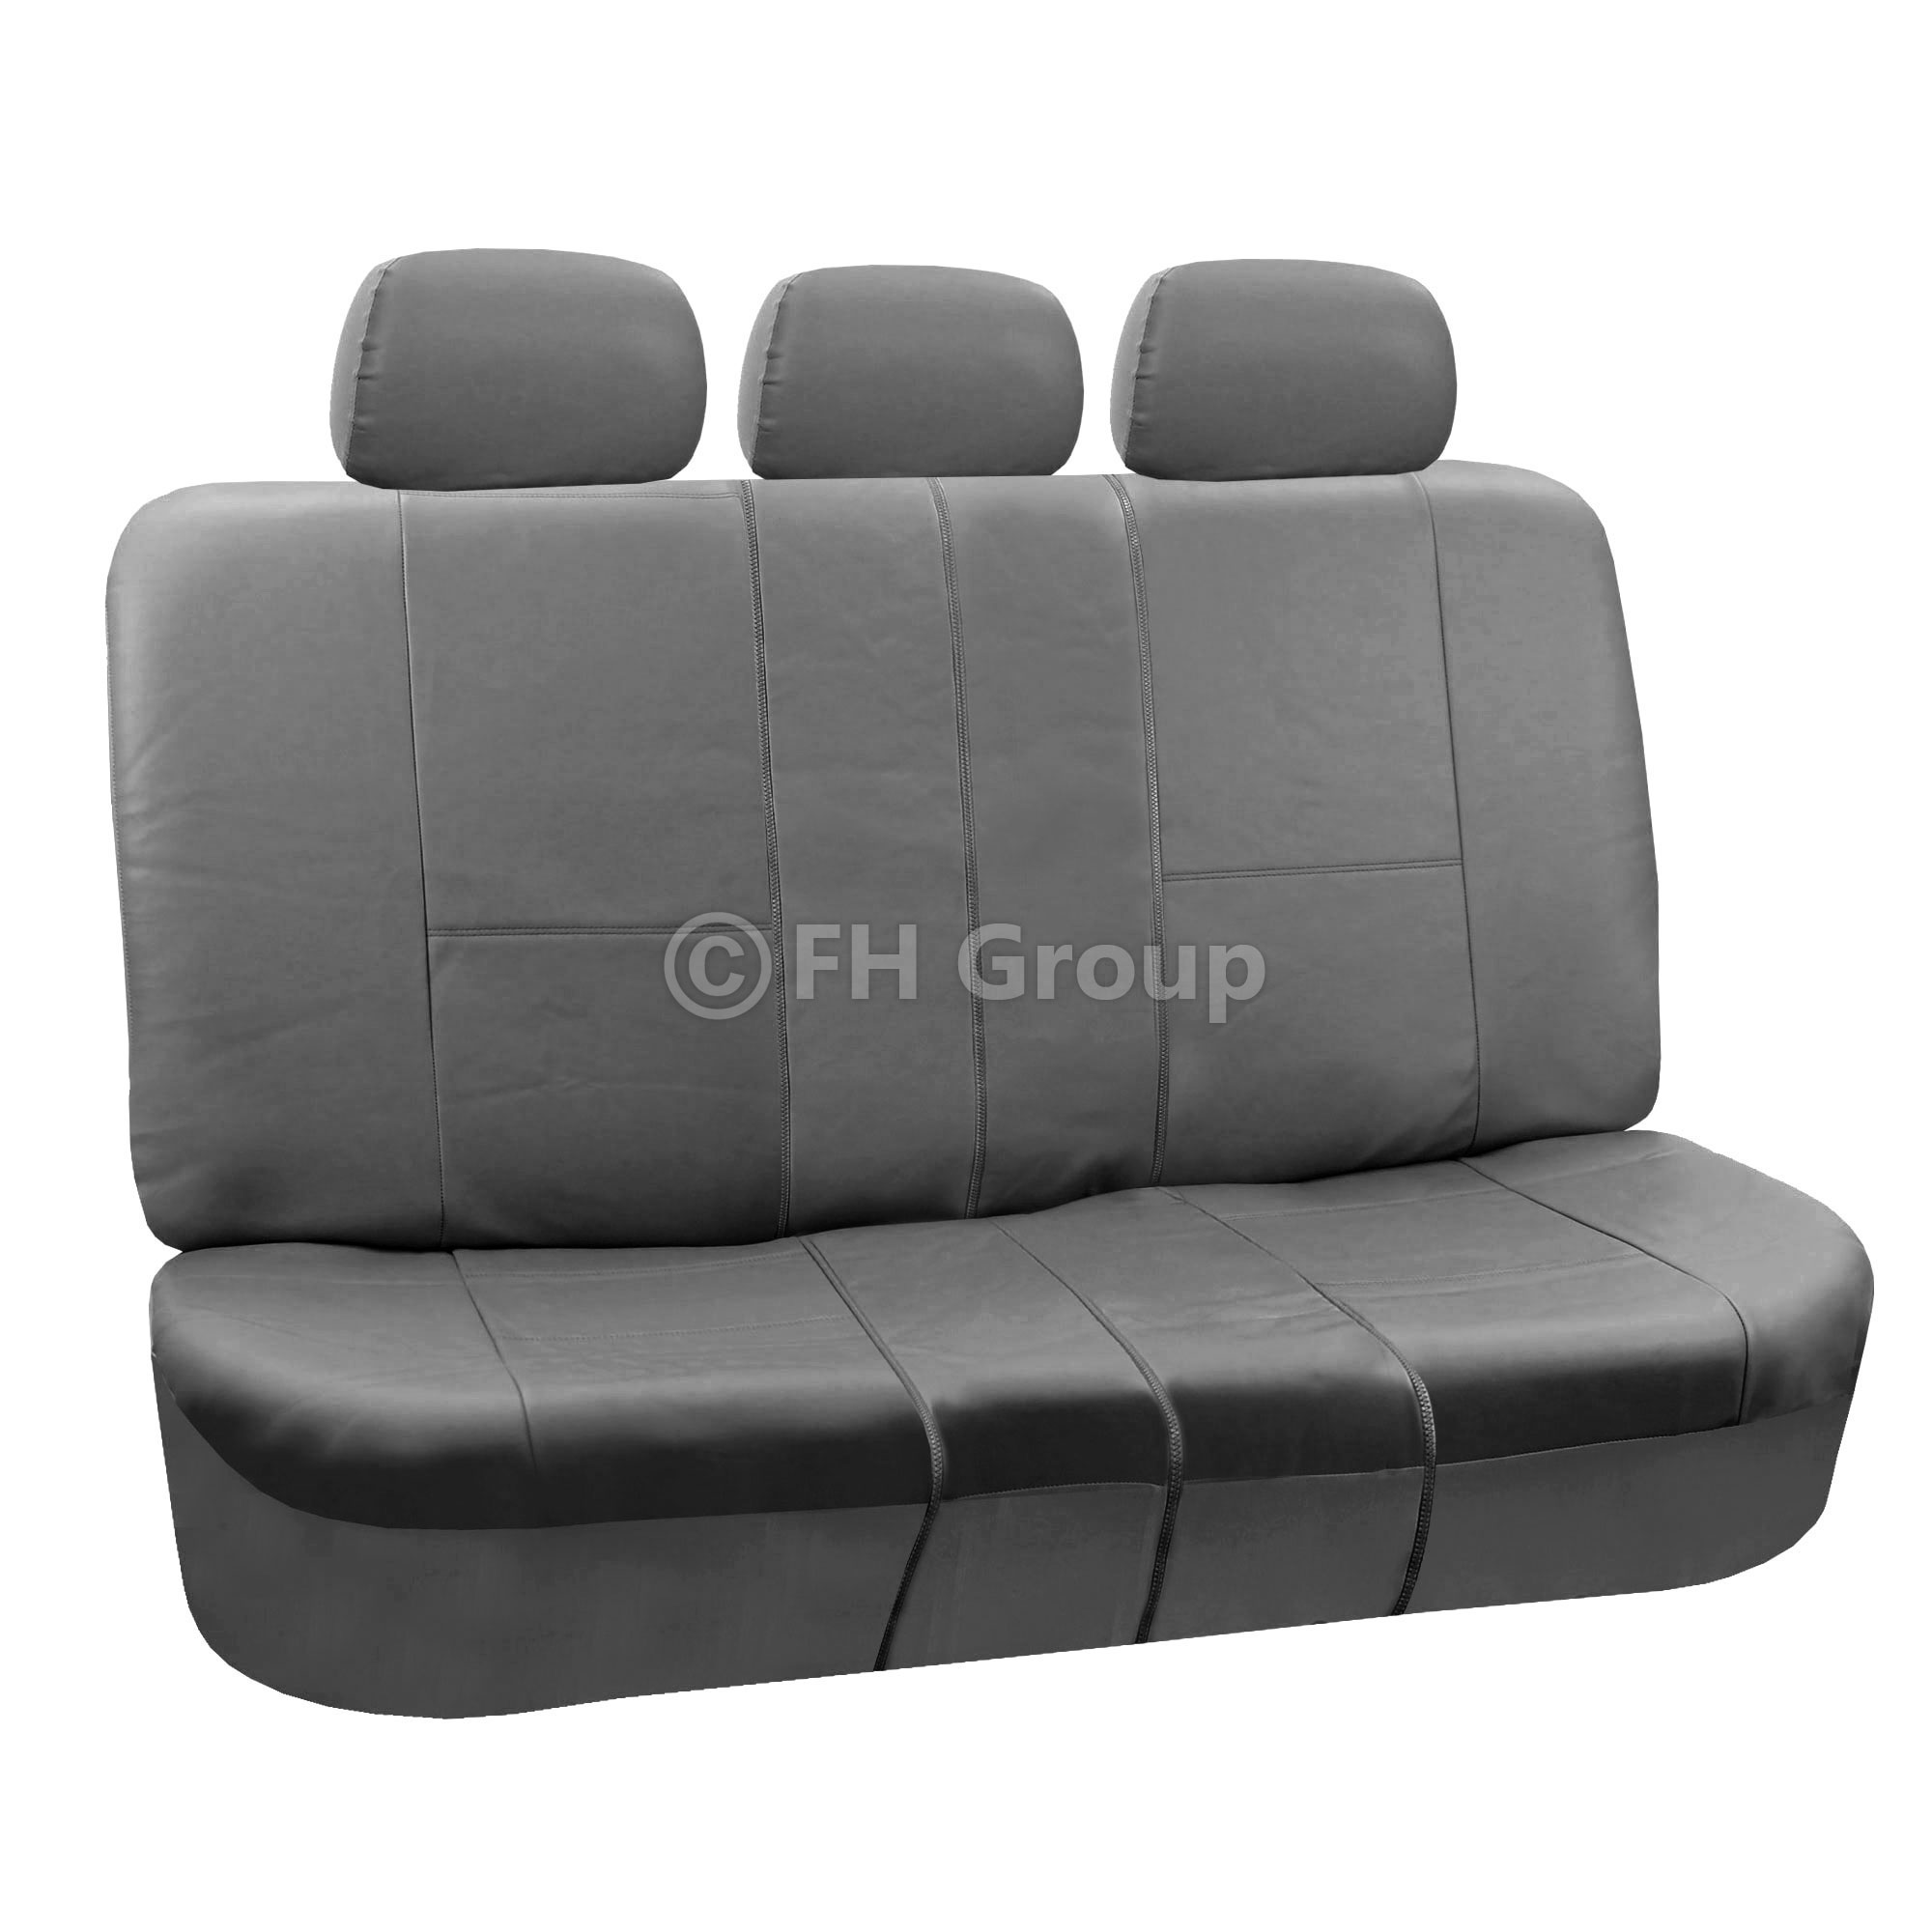 Marvelous photograph of Details about PU Leather Car Seat Covers w. Floor Mats for Split Bench with #3C3C3C color and 2000x2000 pixels